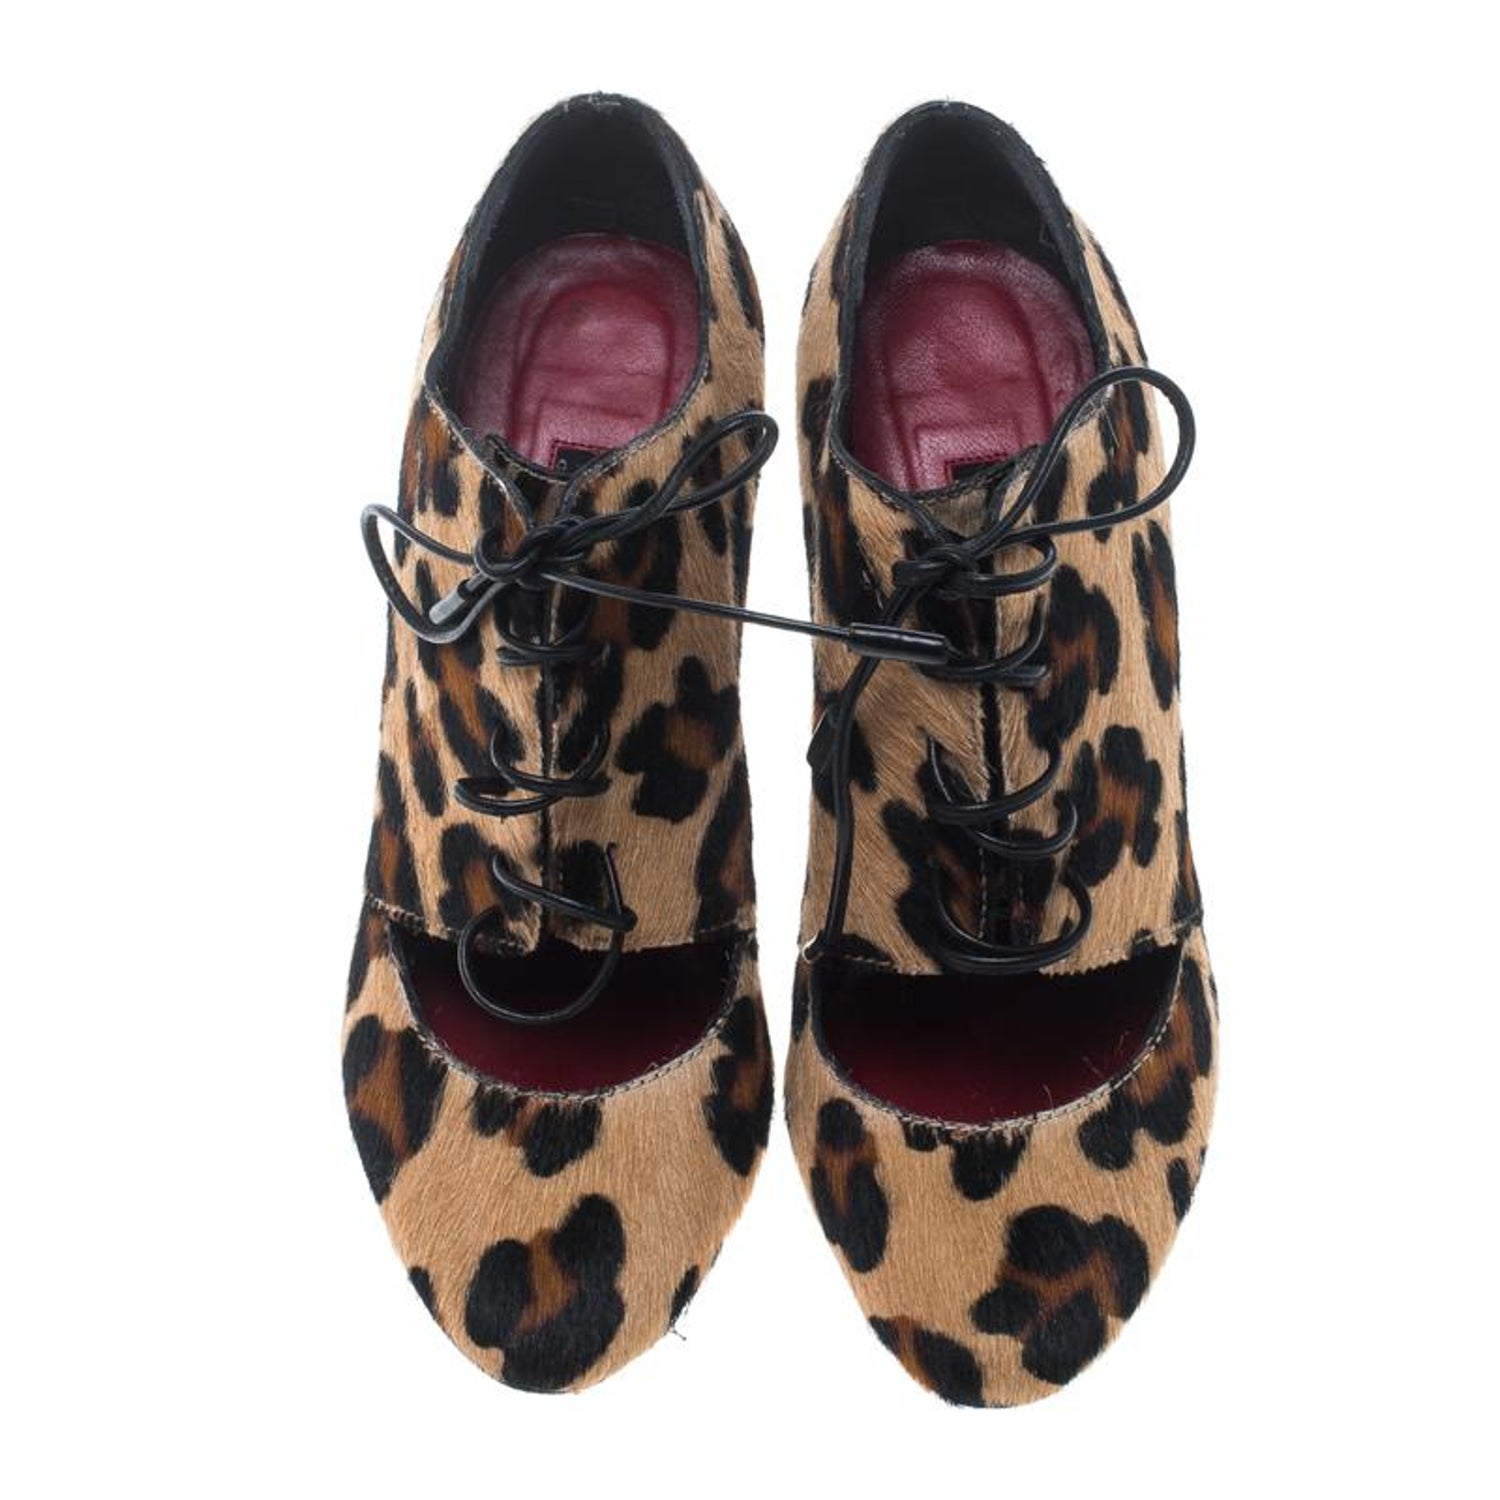 1fcc2f35df879 Carolina Herrera Leopard Print Calf Hair Cut Out Lace Up Booties Size 36 at  1stdibs